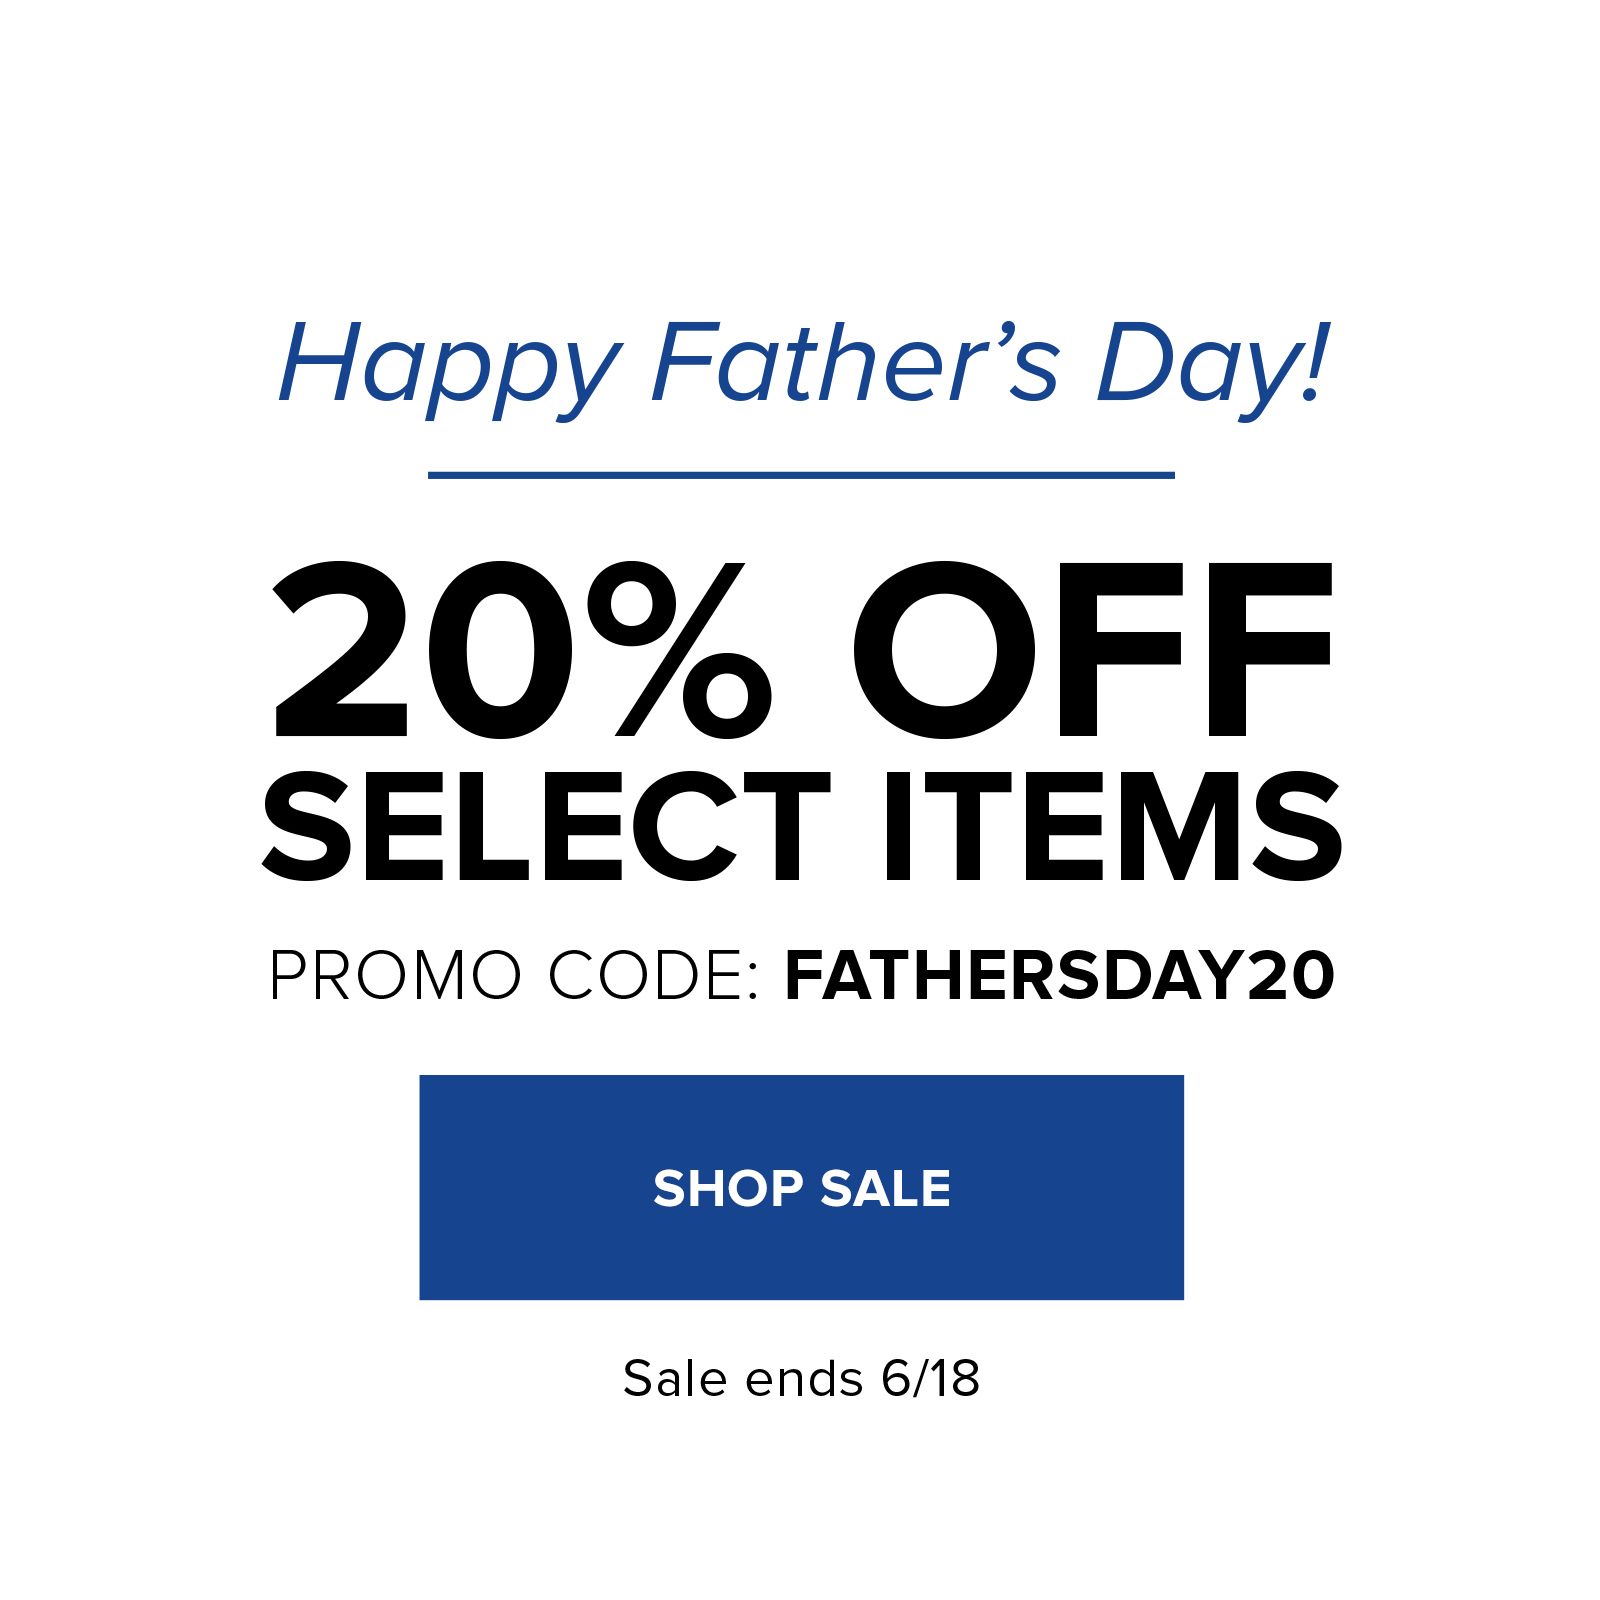 20% off select items with code: FATHERSDAY20